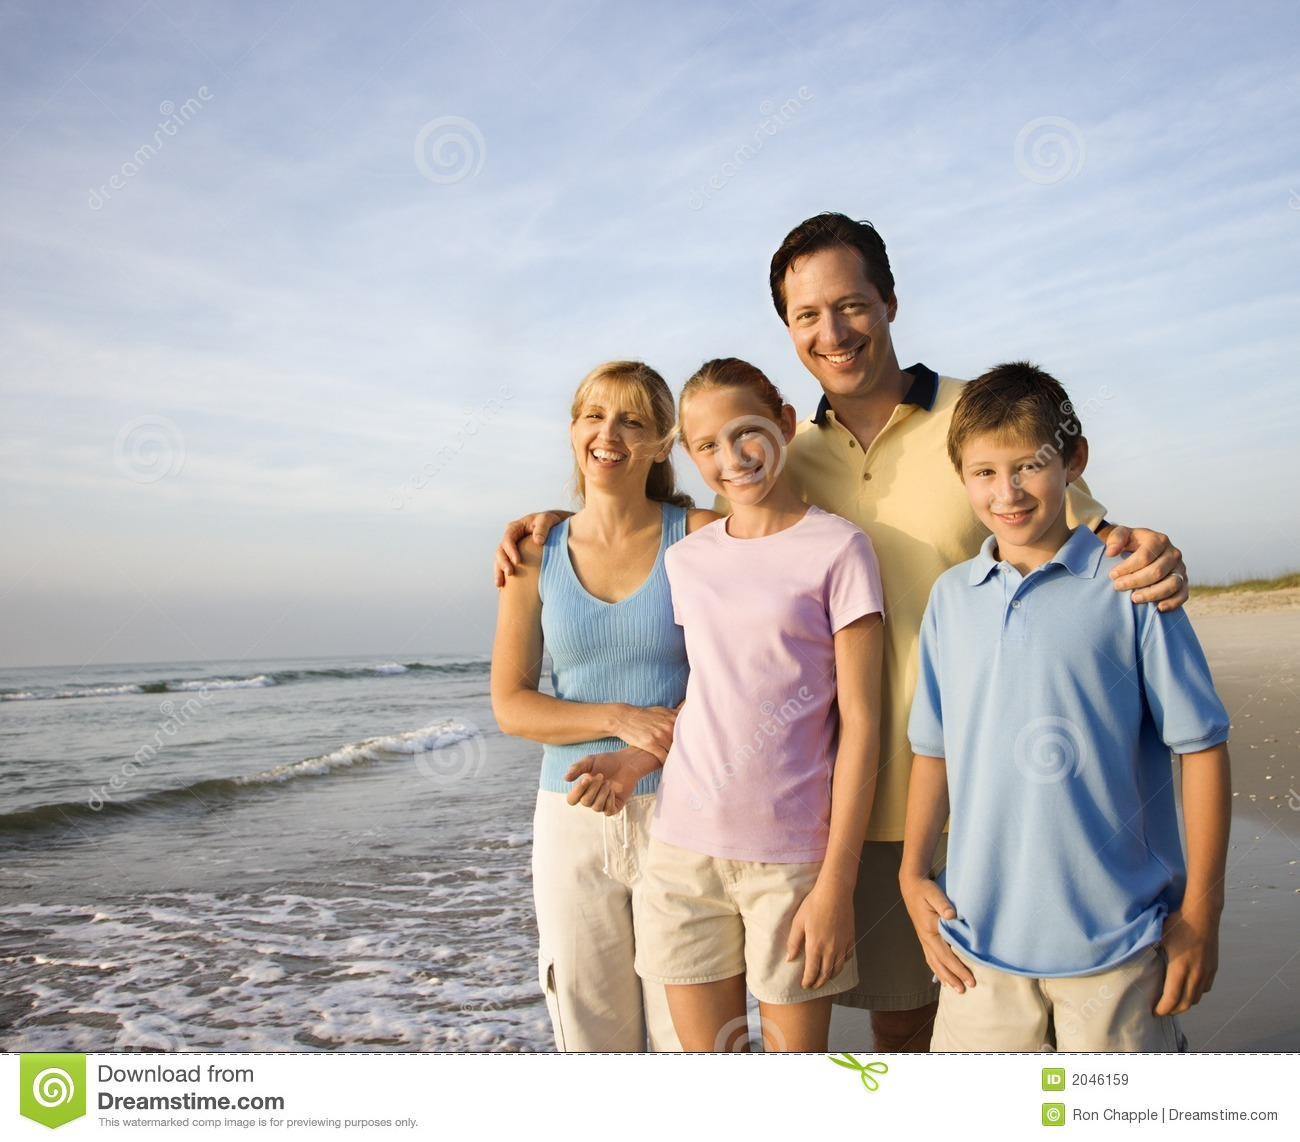 Royalty Free Images Stock Smiling family on beach